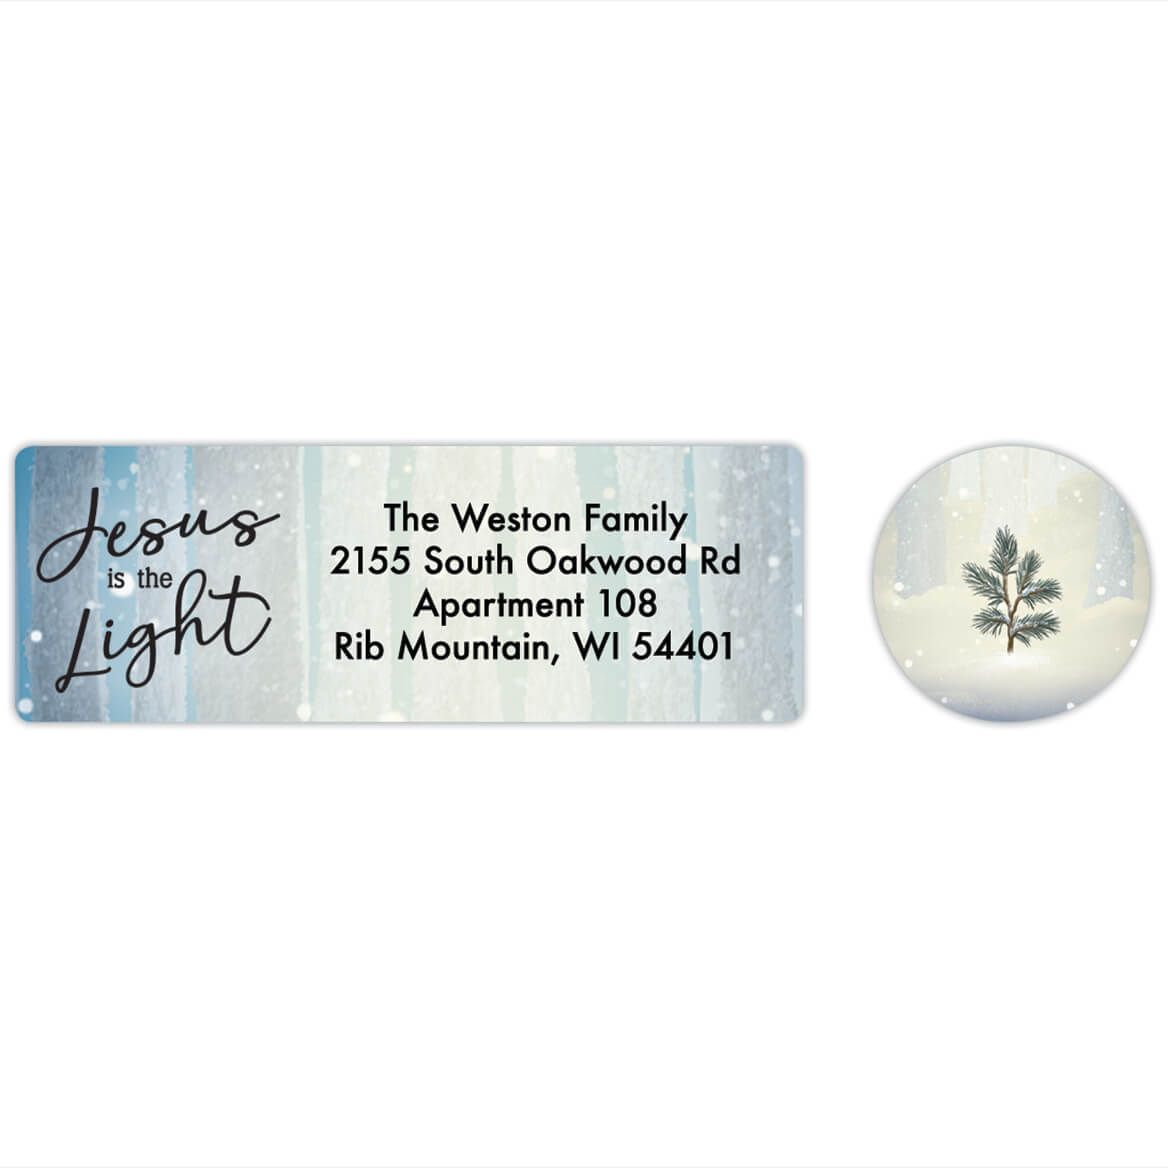 Personalized He is the Light Labels & Envelope Seals 20-368275